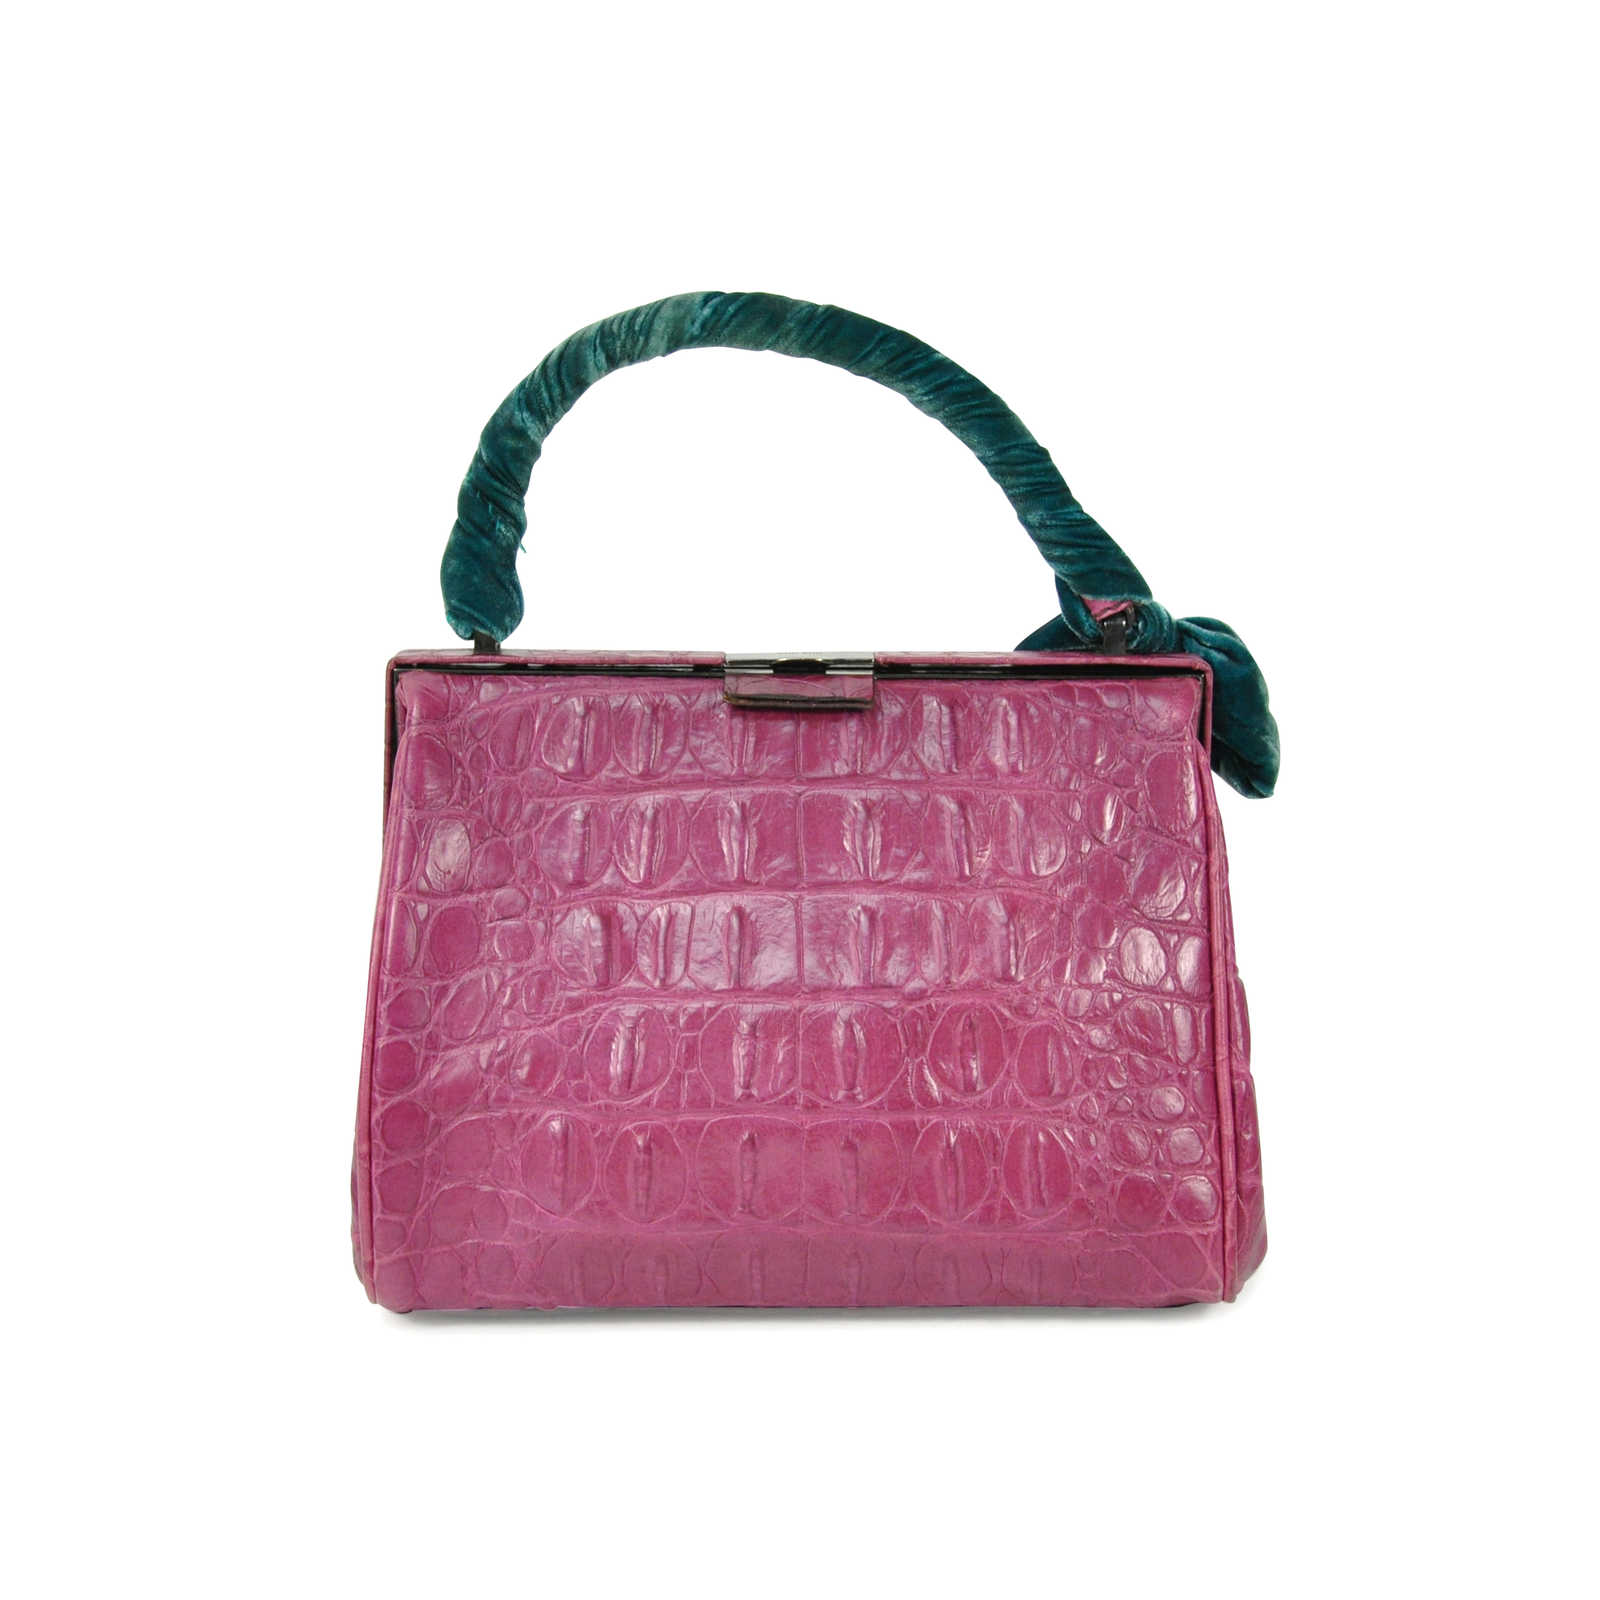 ... Authentic Second Hand Miu Miu Velvet Handle Crocodile Handbag  (PSS-304-00021) ... 610792eb0ed13